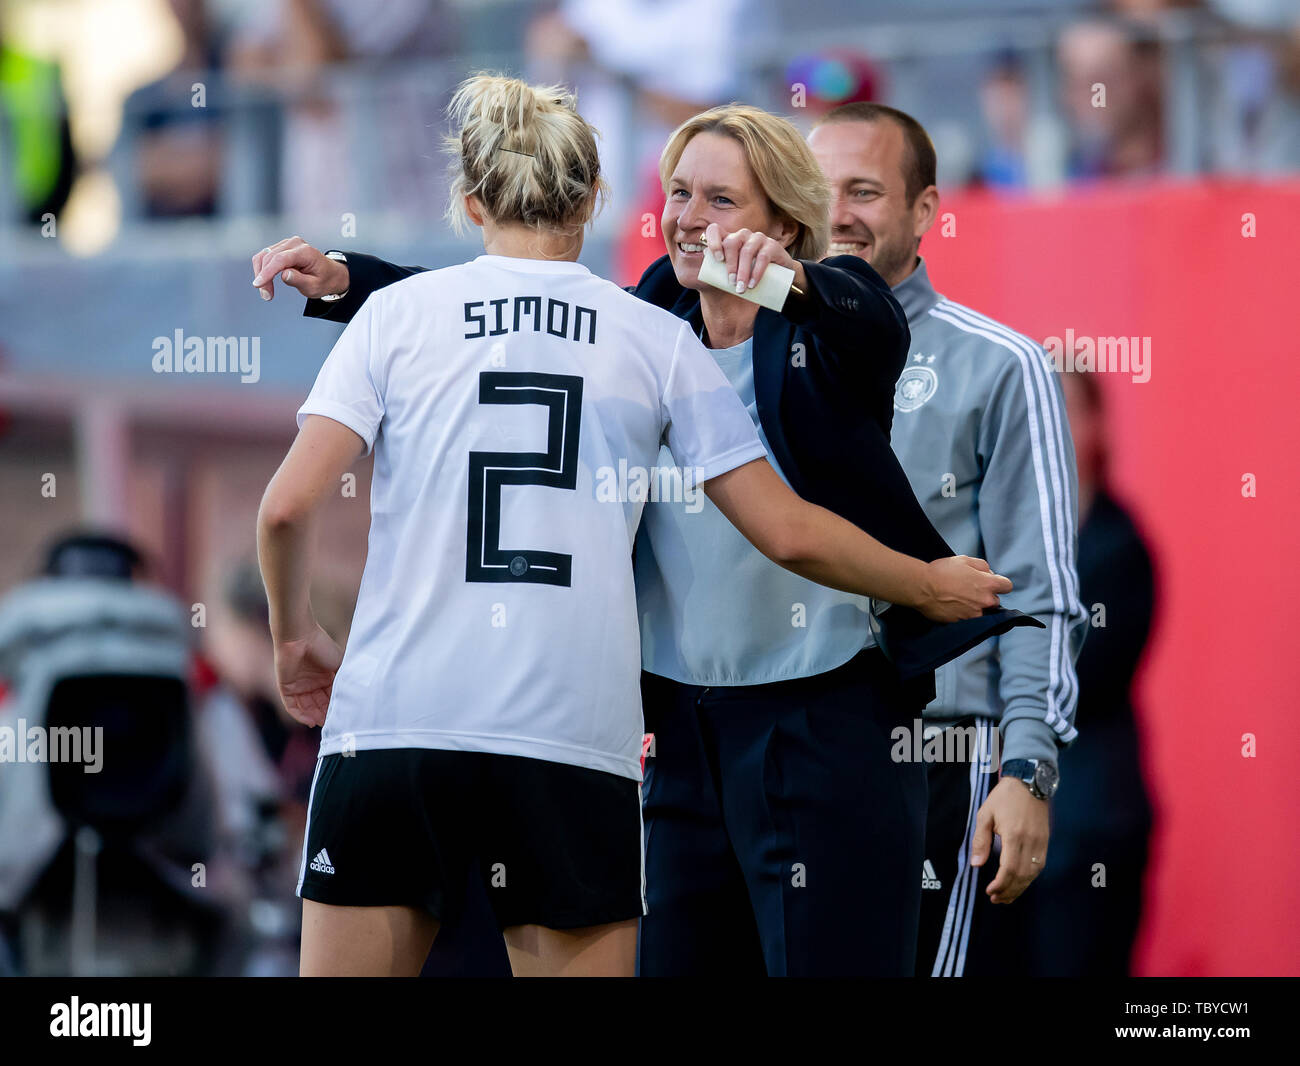 May 30, 2019: Regensburg, Continental Arena: Football Laender match Women: Germany - Chile: Germanys Bundescoachin Martina Voss Tecklenburg cheers with Carolin Simon over the results to 2: 0. Photo: Thomas Eisenhuth | usage worldwide - Stock Image